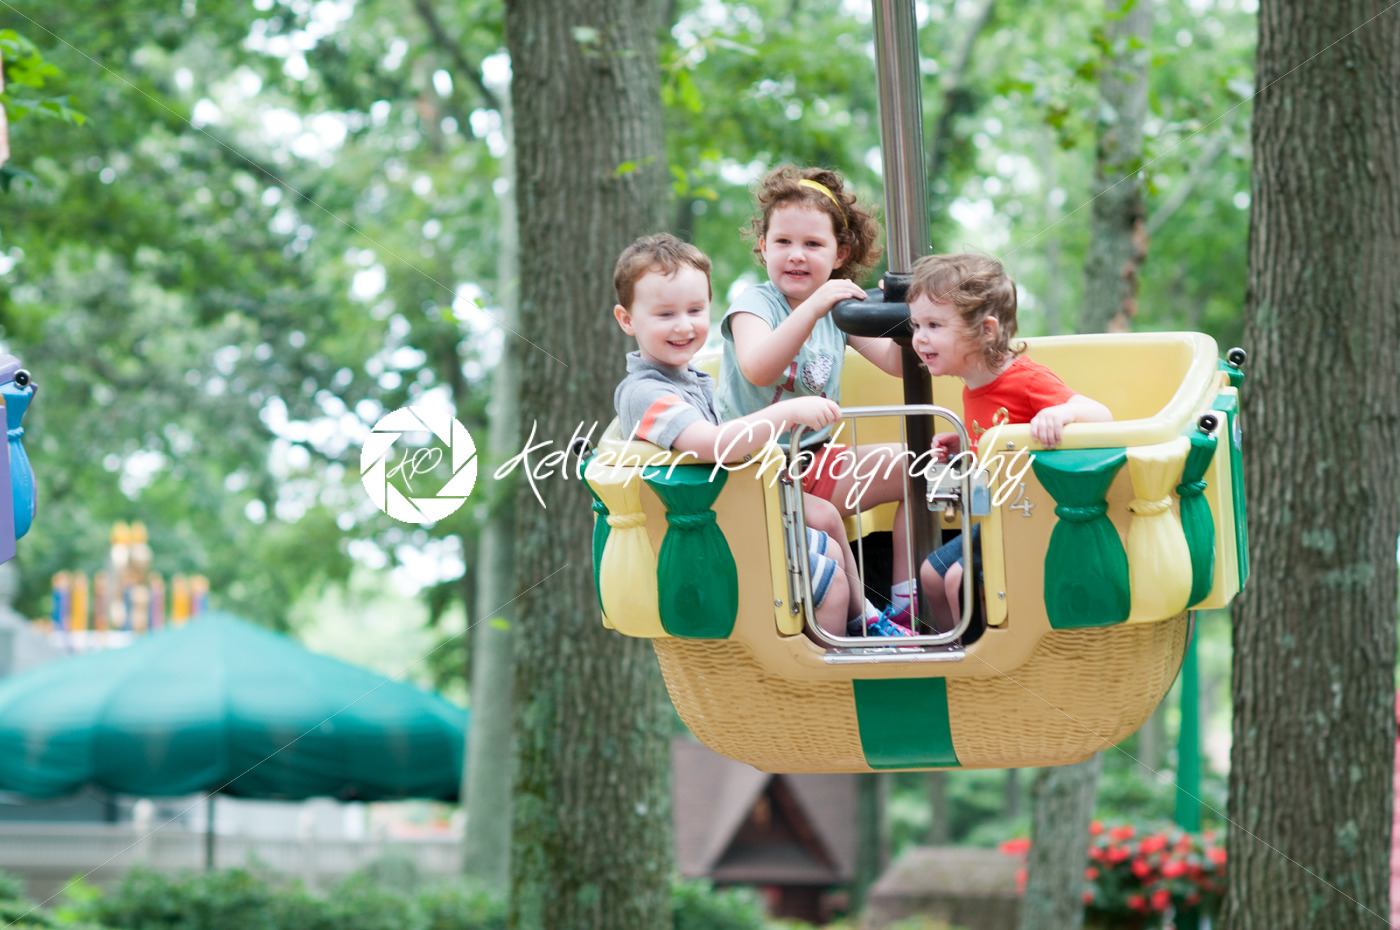 Young siblings, 1 boy and 2 girls, having fun on boardwalk amusement ride - Kelleher Photography Store